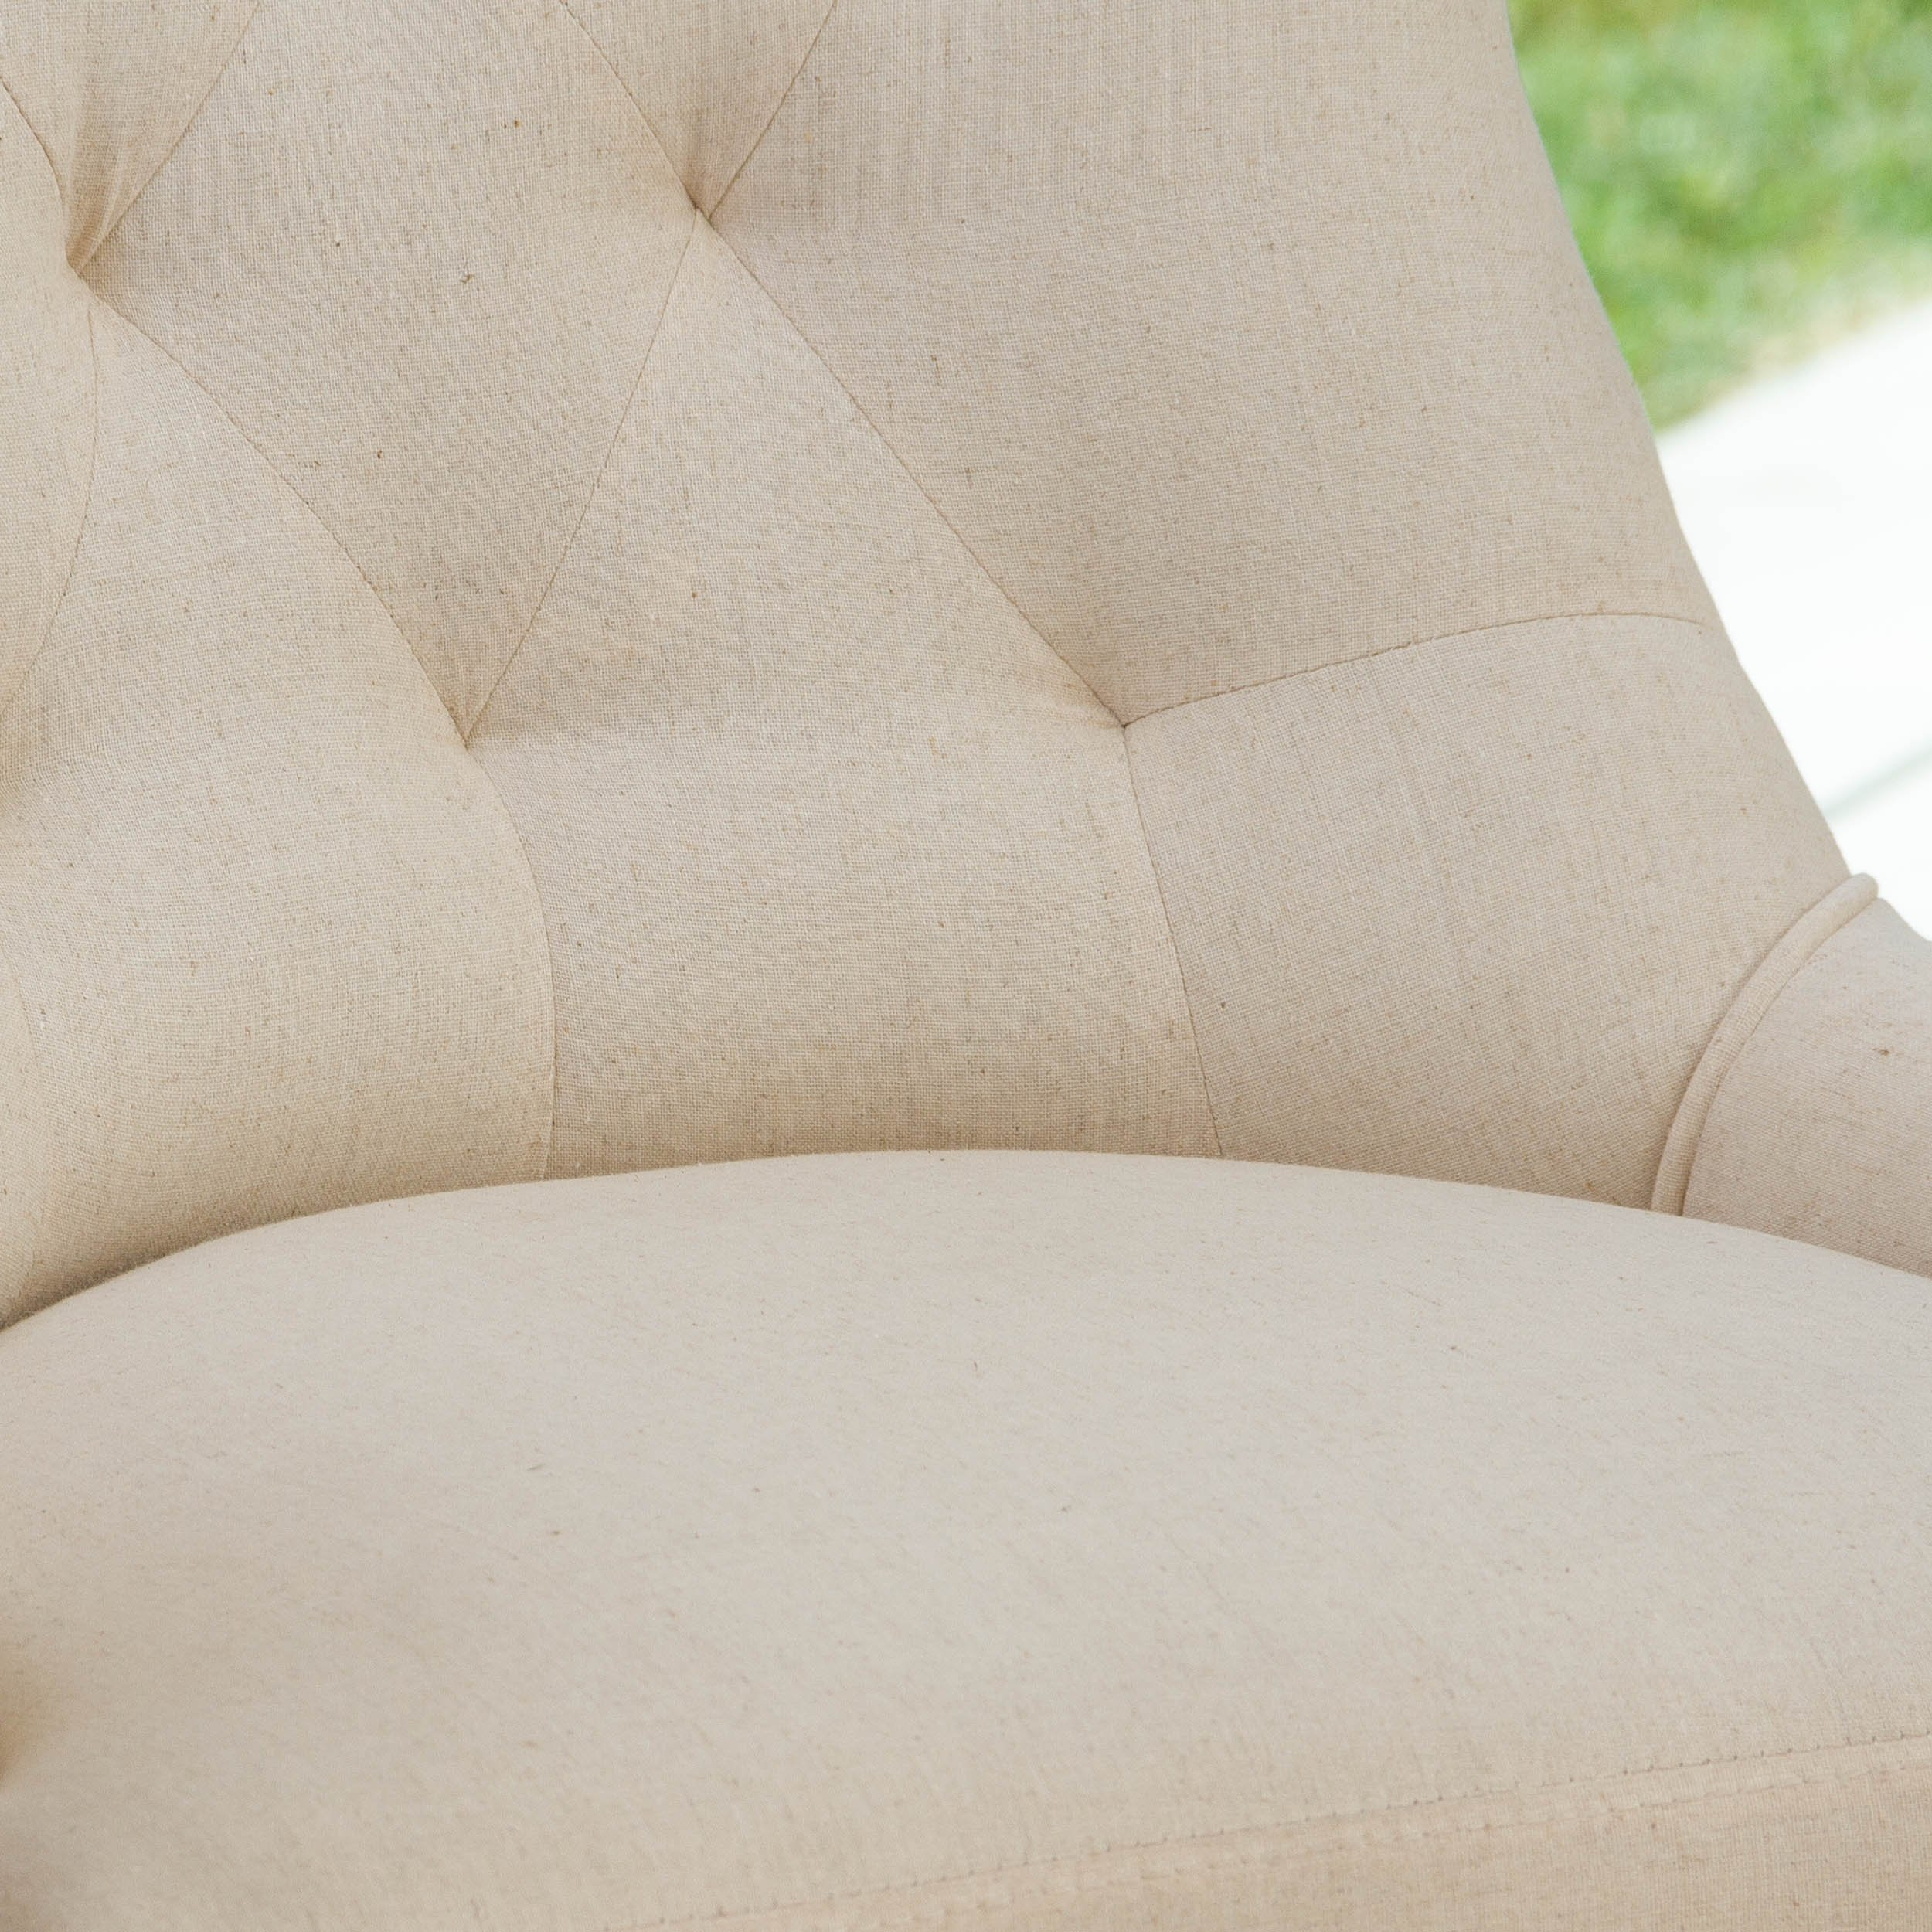 Christopher Knight Home 295013 Hayden Tufted Fabric Dining/Accent Chair (Set of 2) Beige